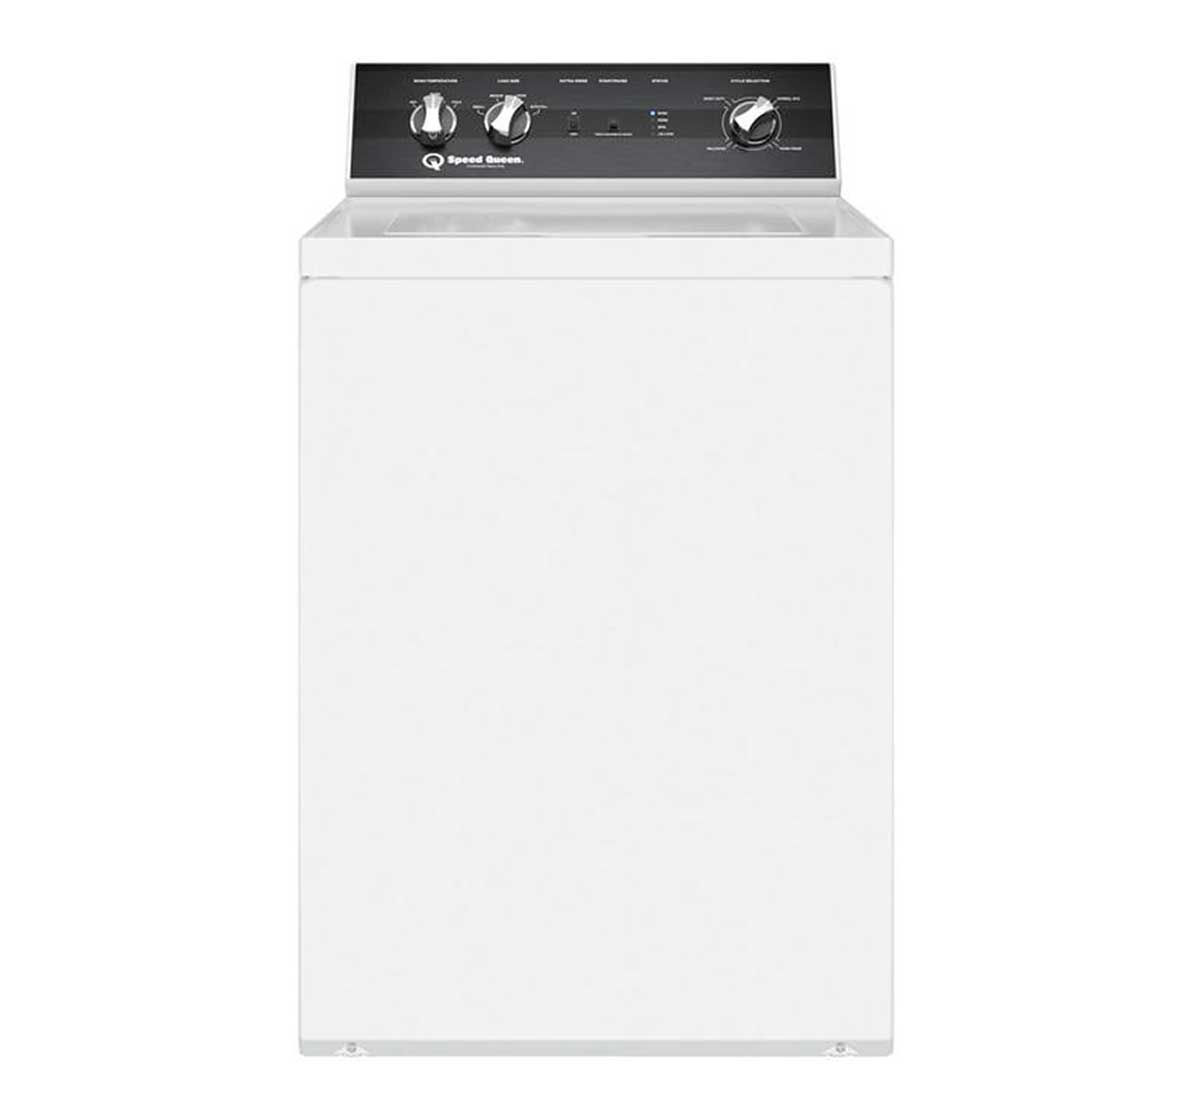 Speedqueen Top Load Washer Badcock Home Furniture More